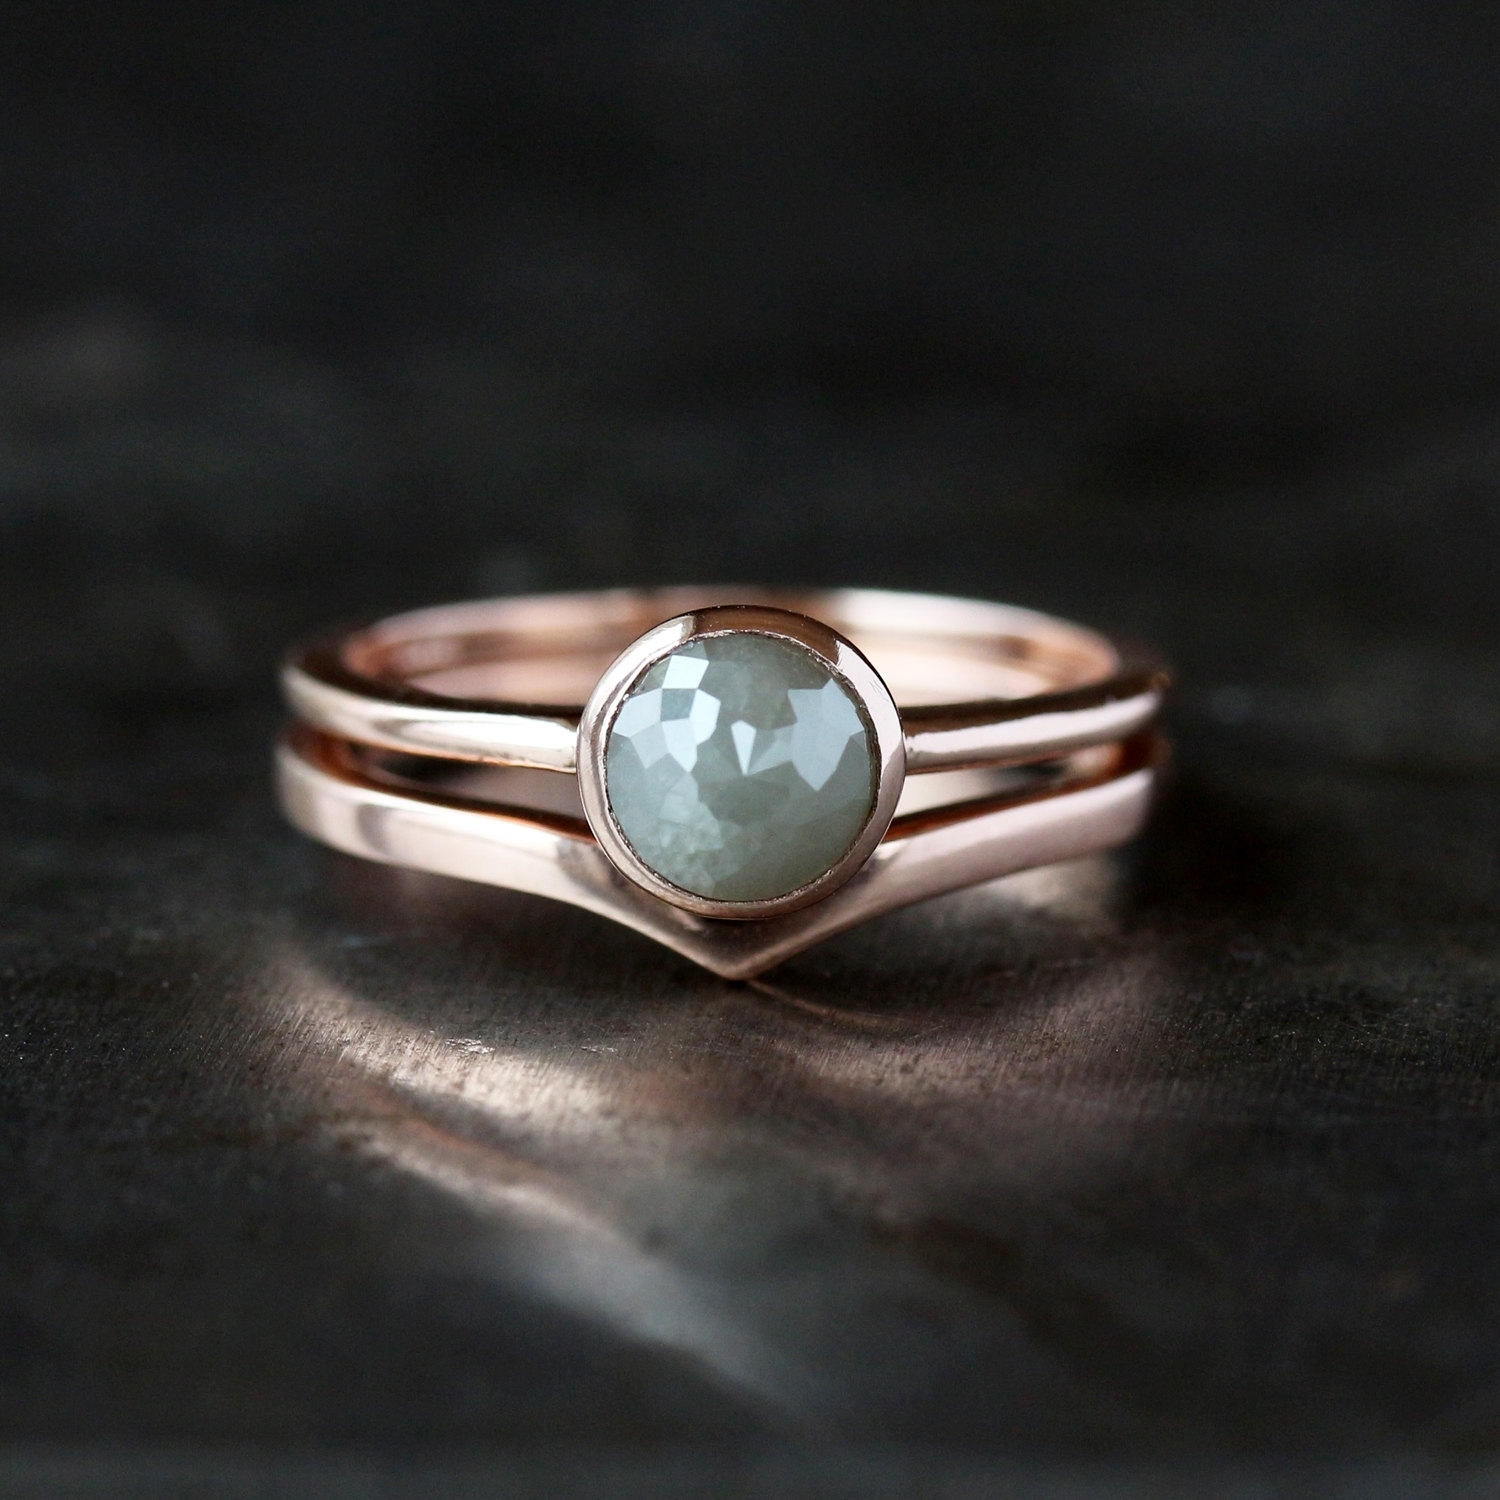 Chevron Wedding Band, 14K Rose Gold Wedding Ring, Contour Band With Regard To Most Recent Chevron Band Rings (Gallery 12 of 15)